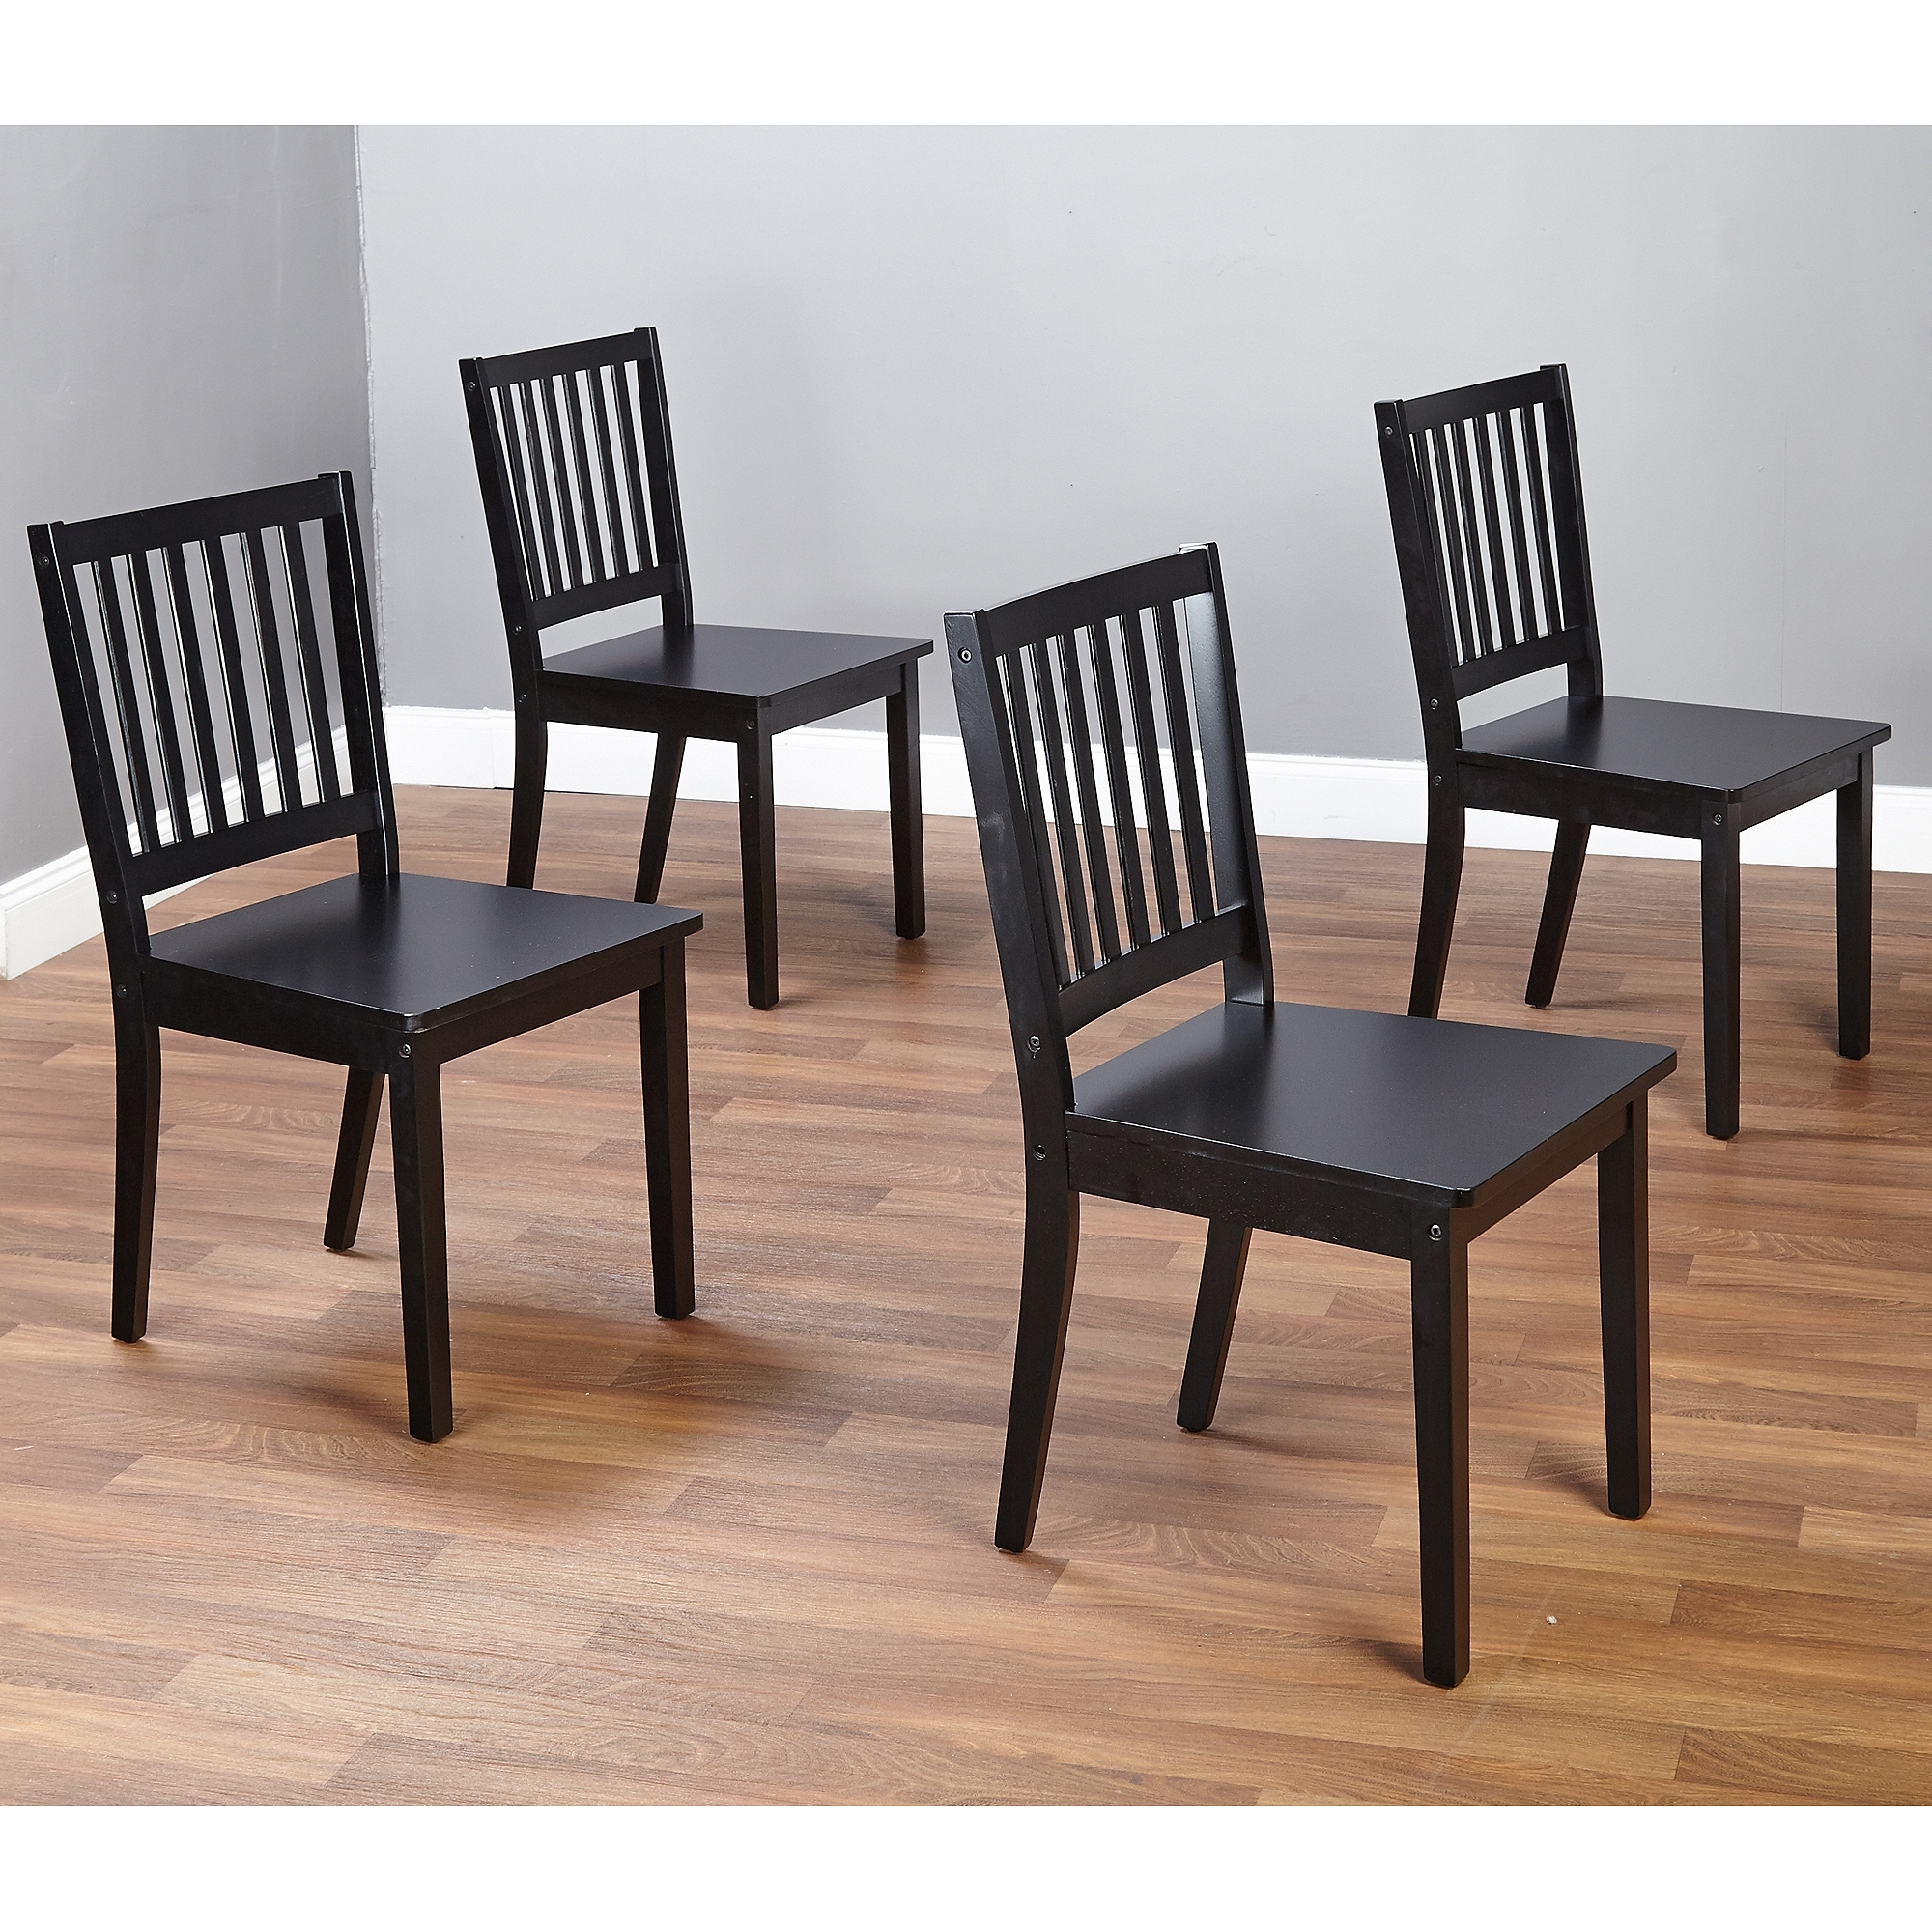 Most Recent Shaker Dining Chairs, Set Of 4, Espresso – Walmart Pertaining To Wooden Dining Sets (Gallery 14 of 25)